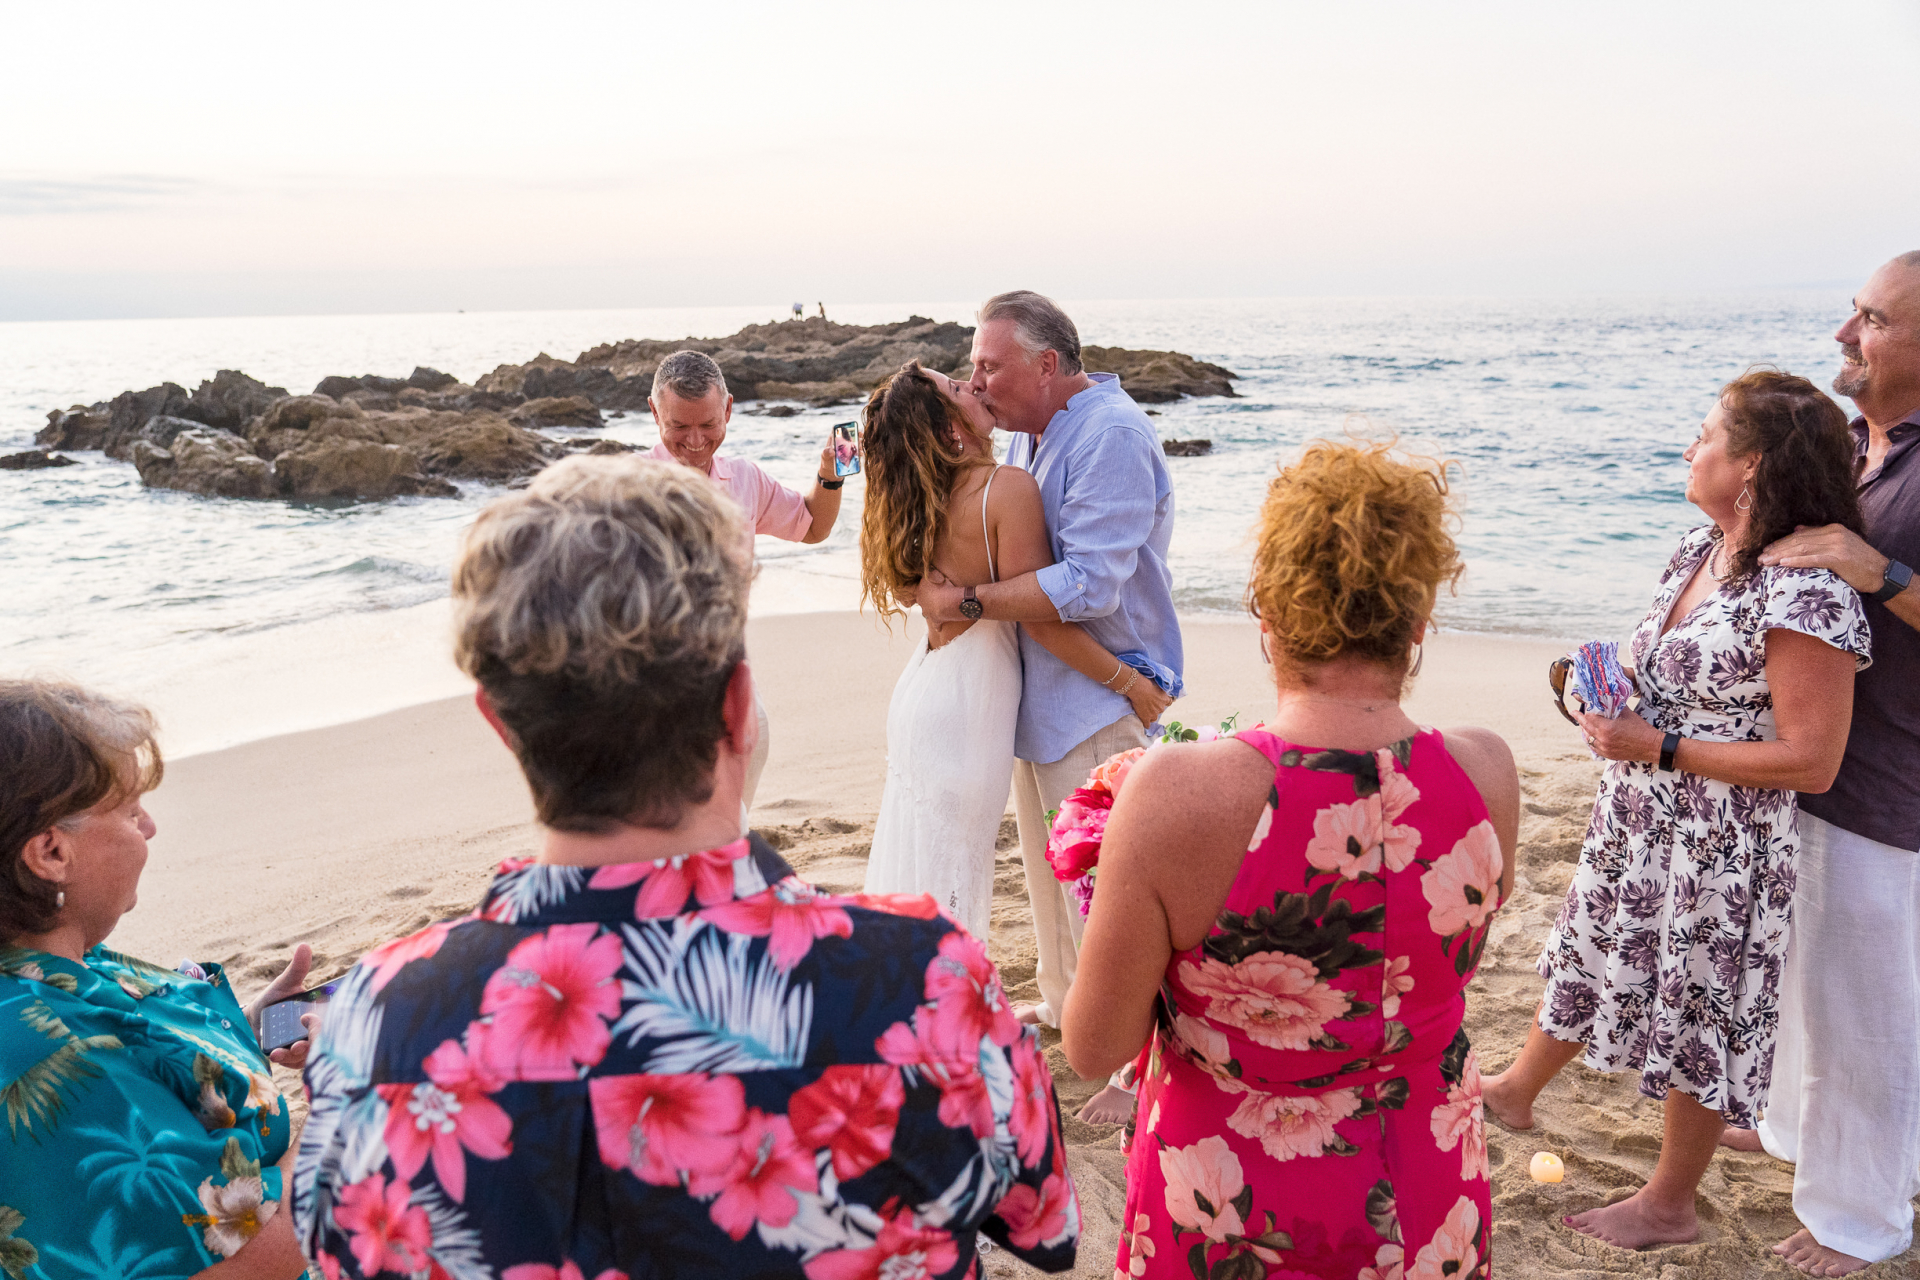 Mexico Beach Elopement Ceremony Photographer | The ceremony is now over, and the couple seals their marriage with a kiss